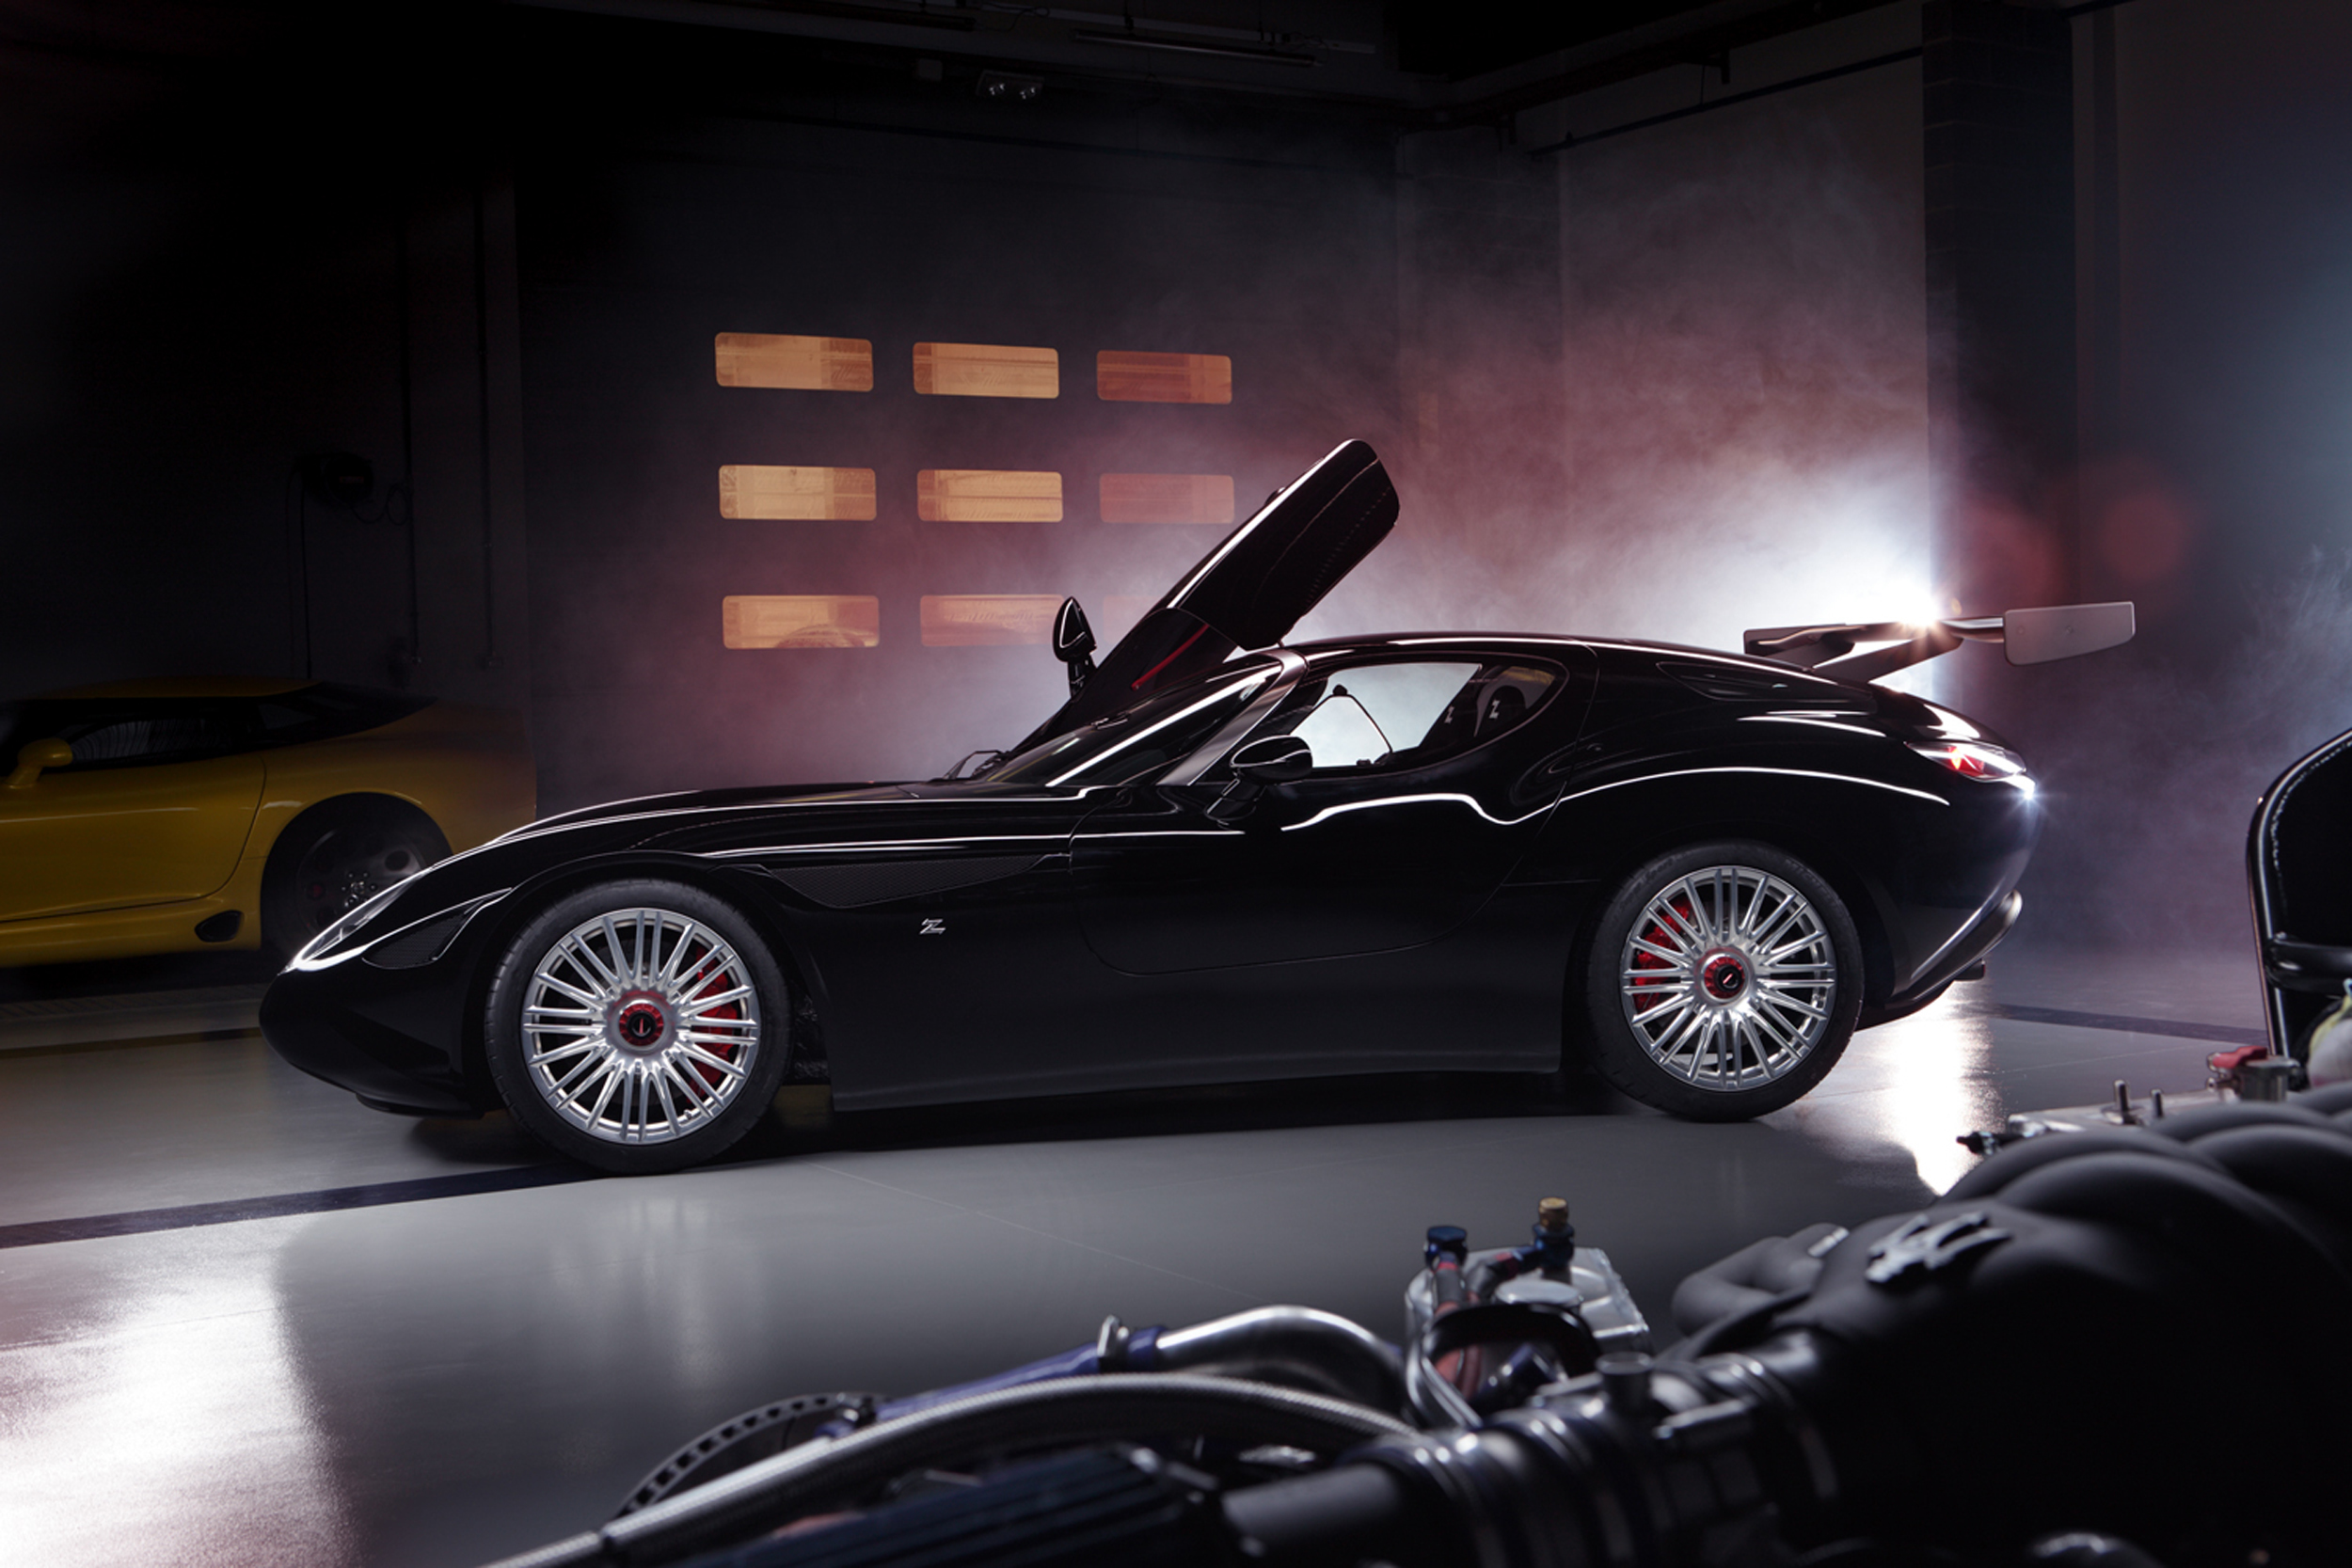 http://www.autoguide.com/blog/wp-content/gallery/zagato-maserati-mostro/zagato-maserati-mostro-01.jpg